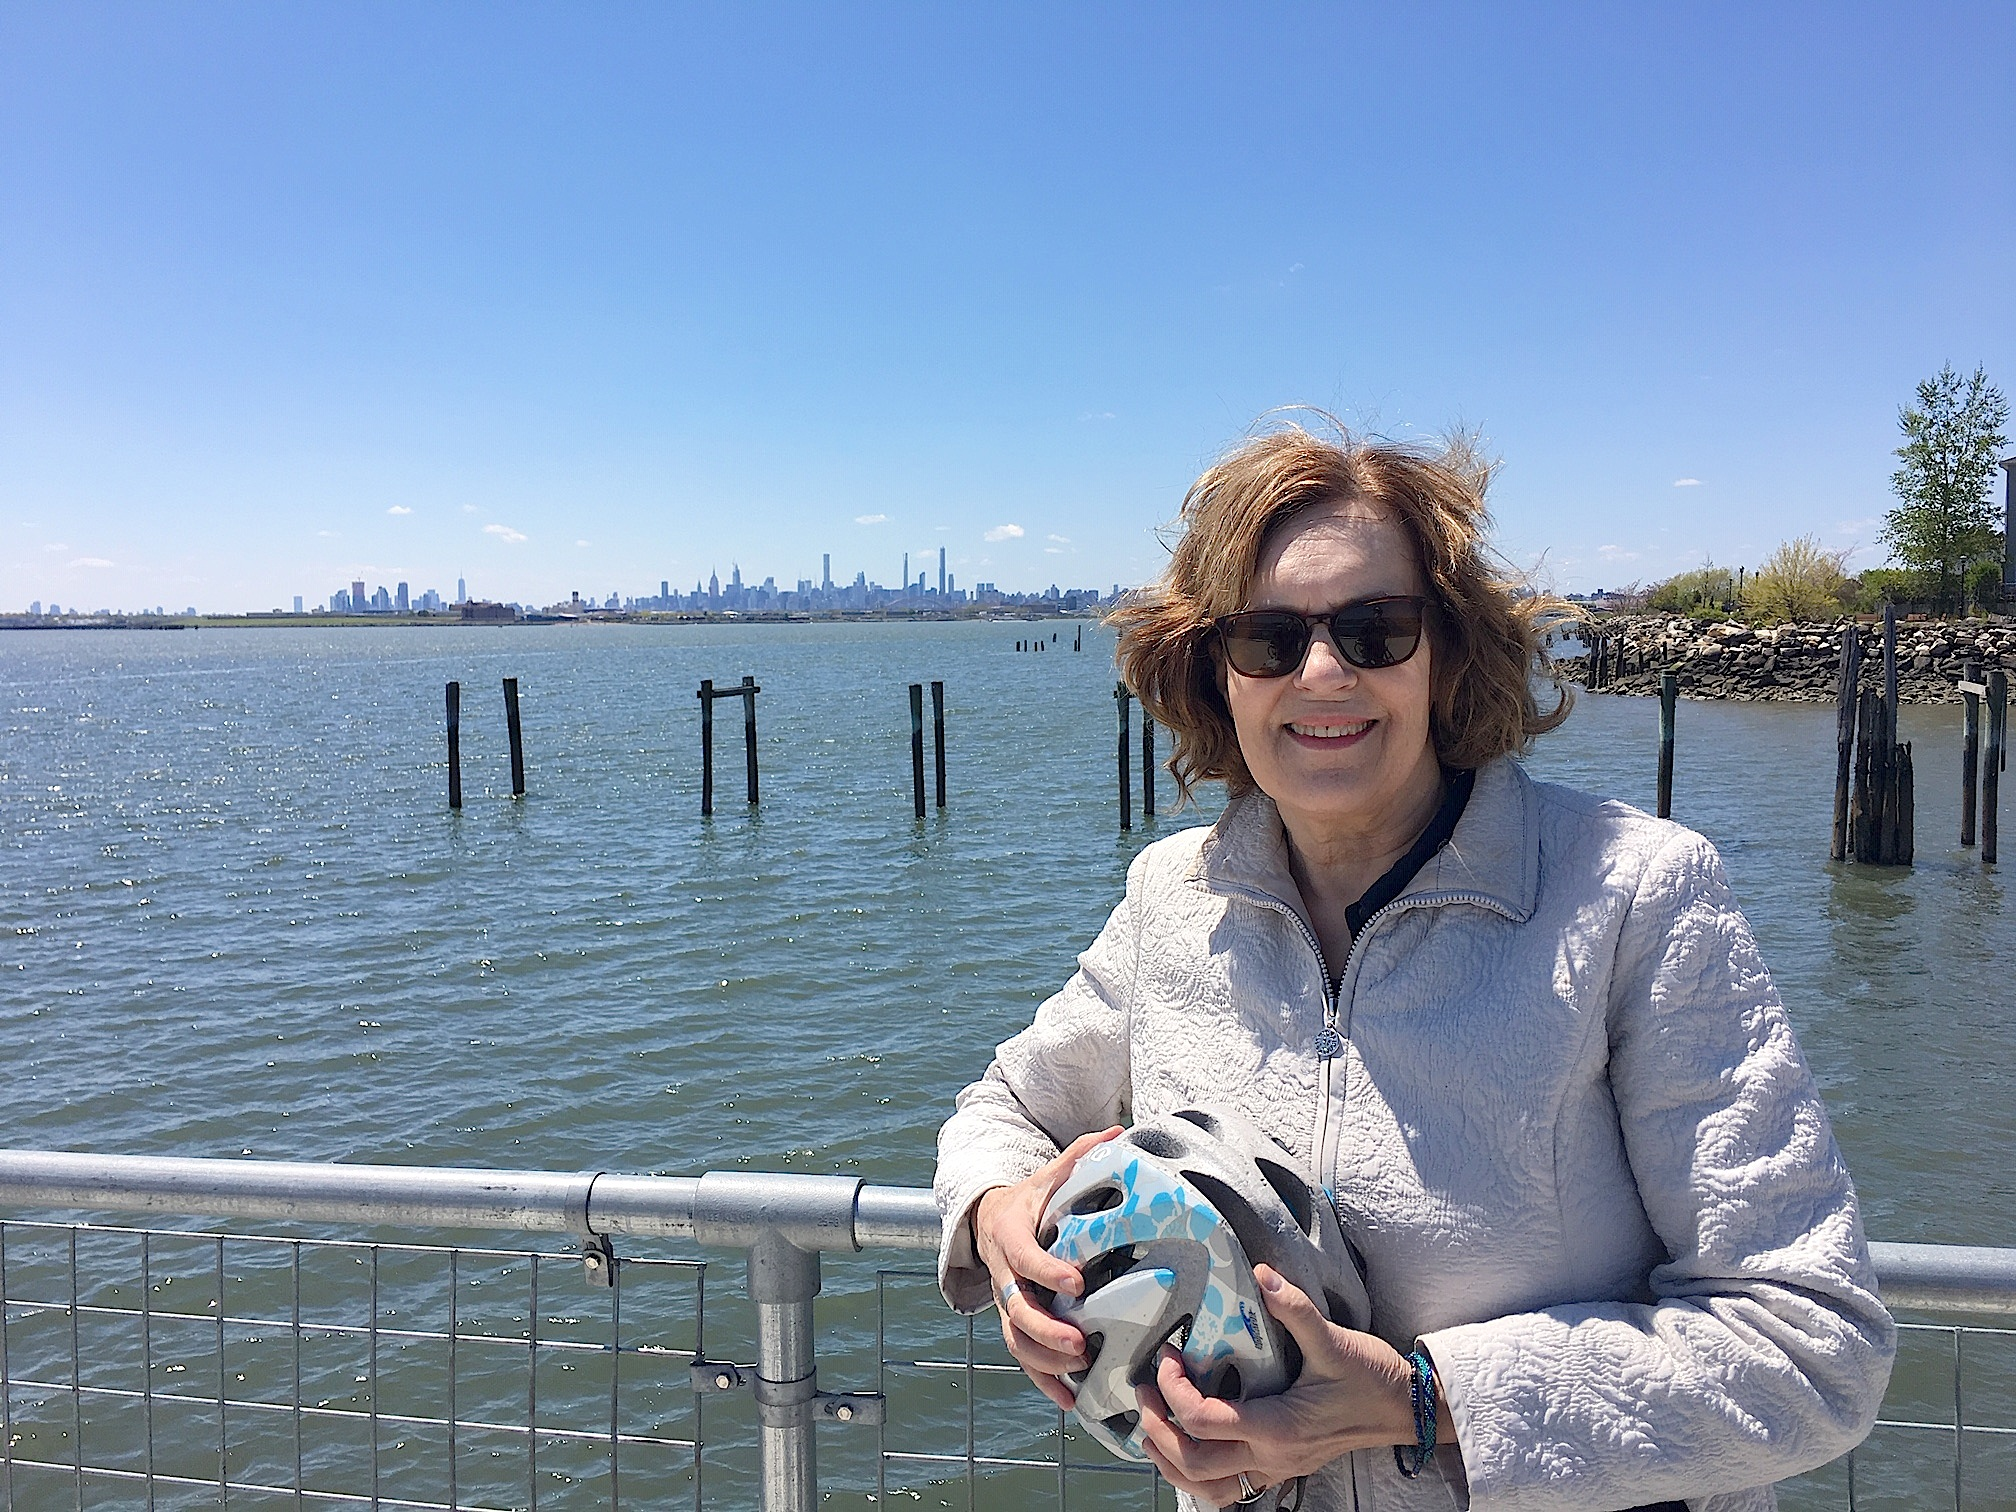 John's Bday, May 13, 2020  Soundview NY.. We took the ferry there!